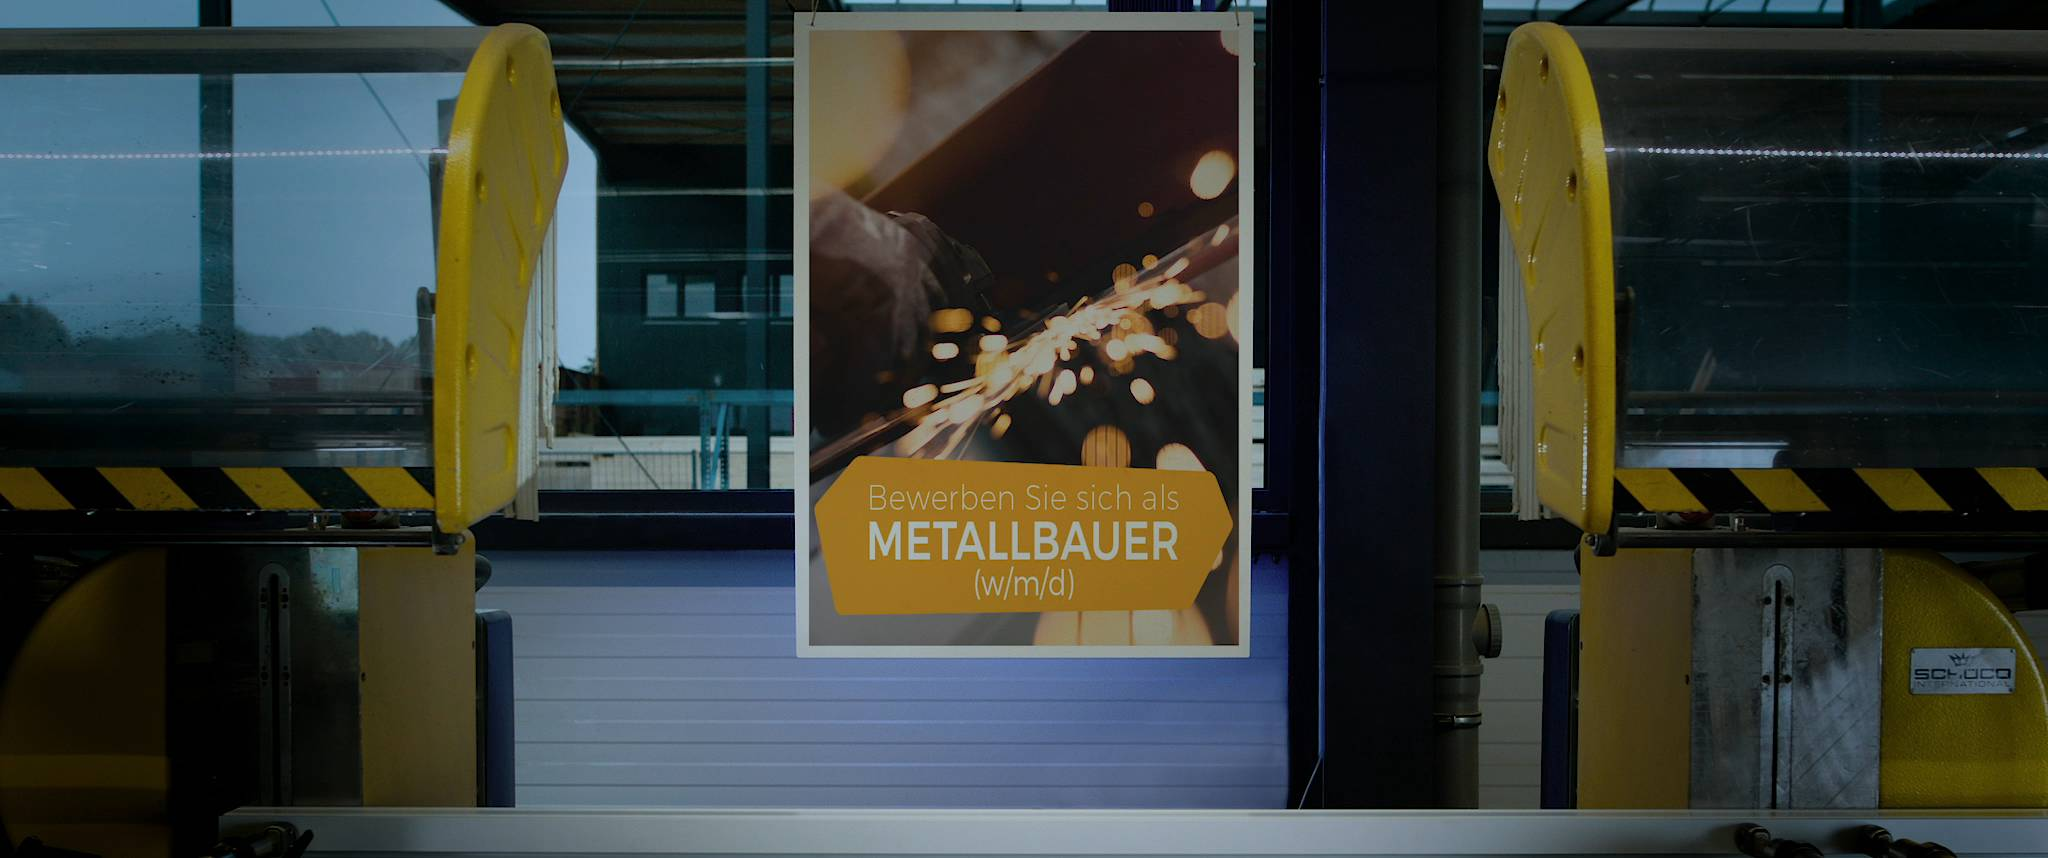 Metallbauer_Hunold